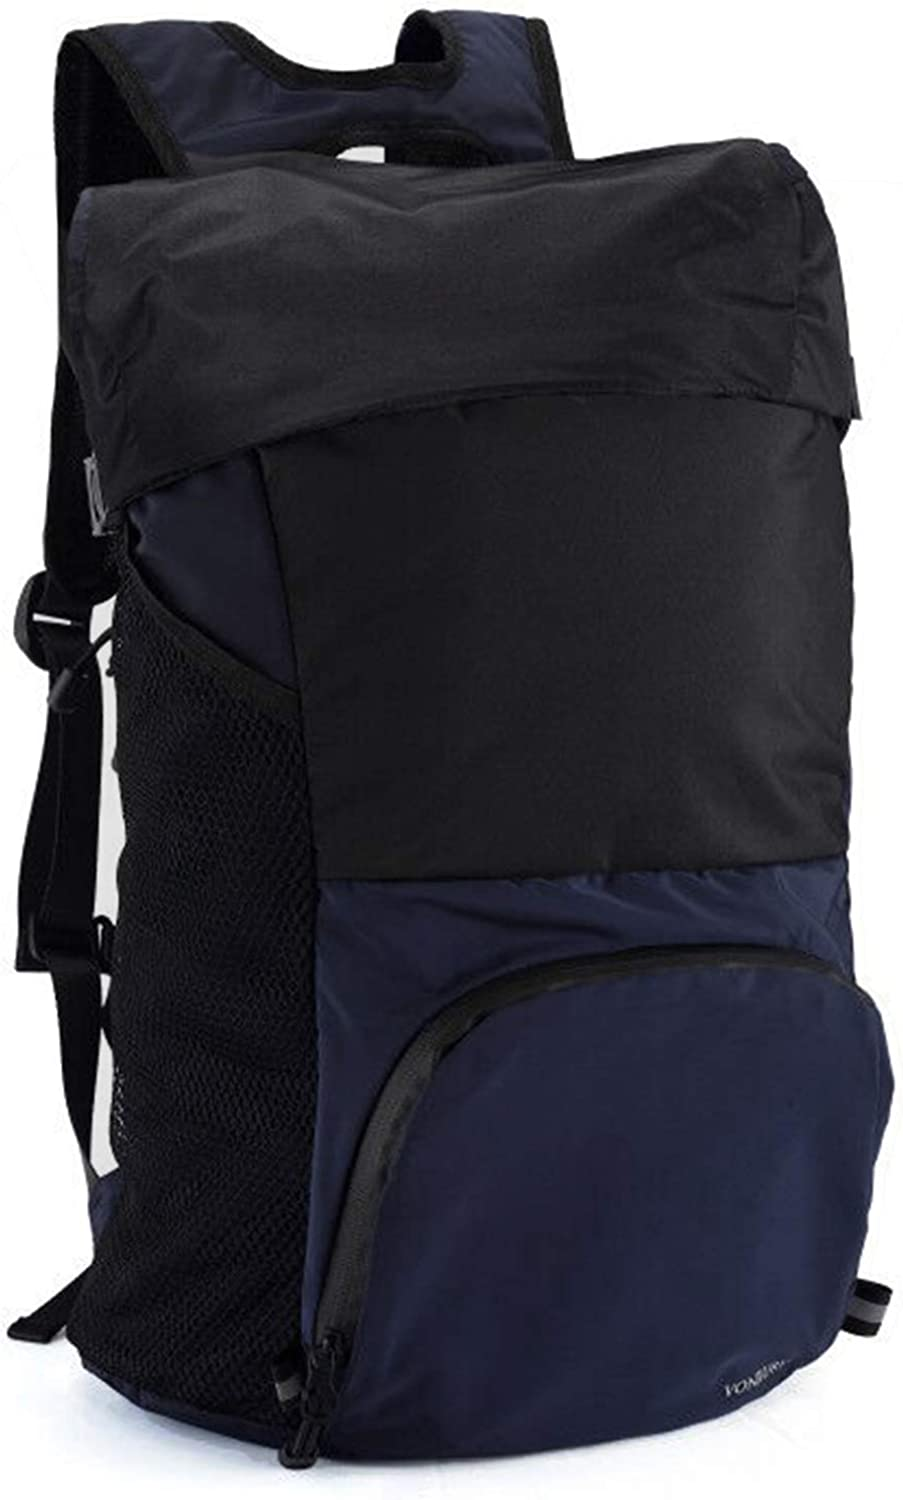 Hiking Backpack Foldable Be specialty shop super welcome Lightweight Wat 30L-40L Casual Daypack